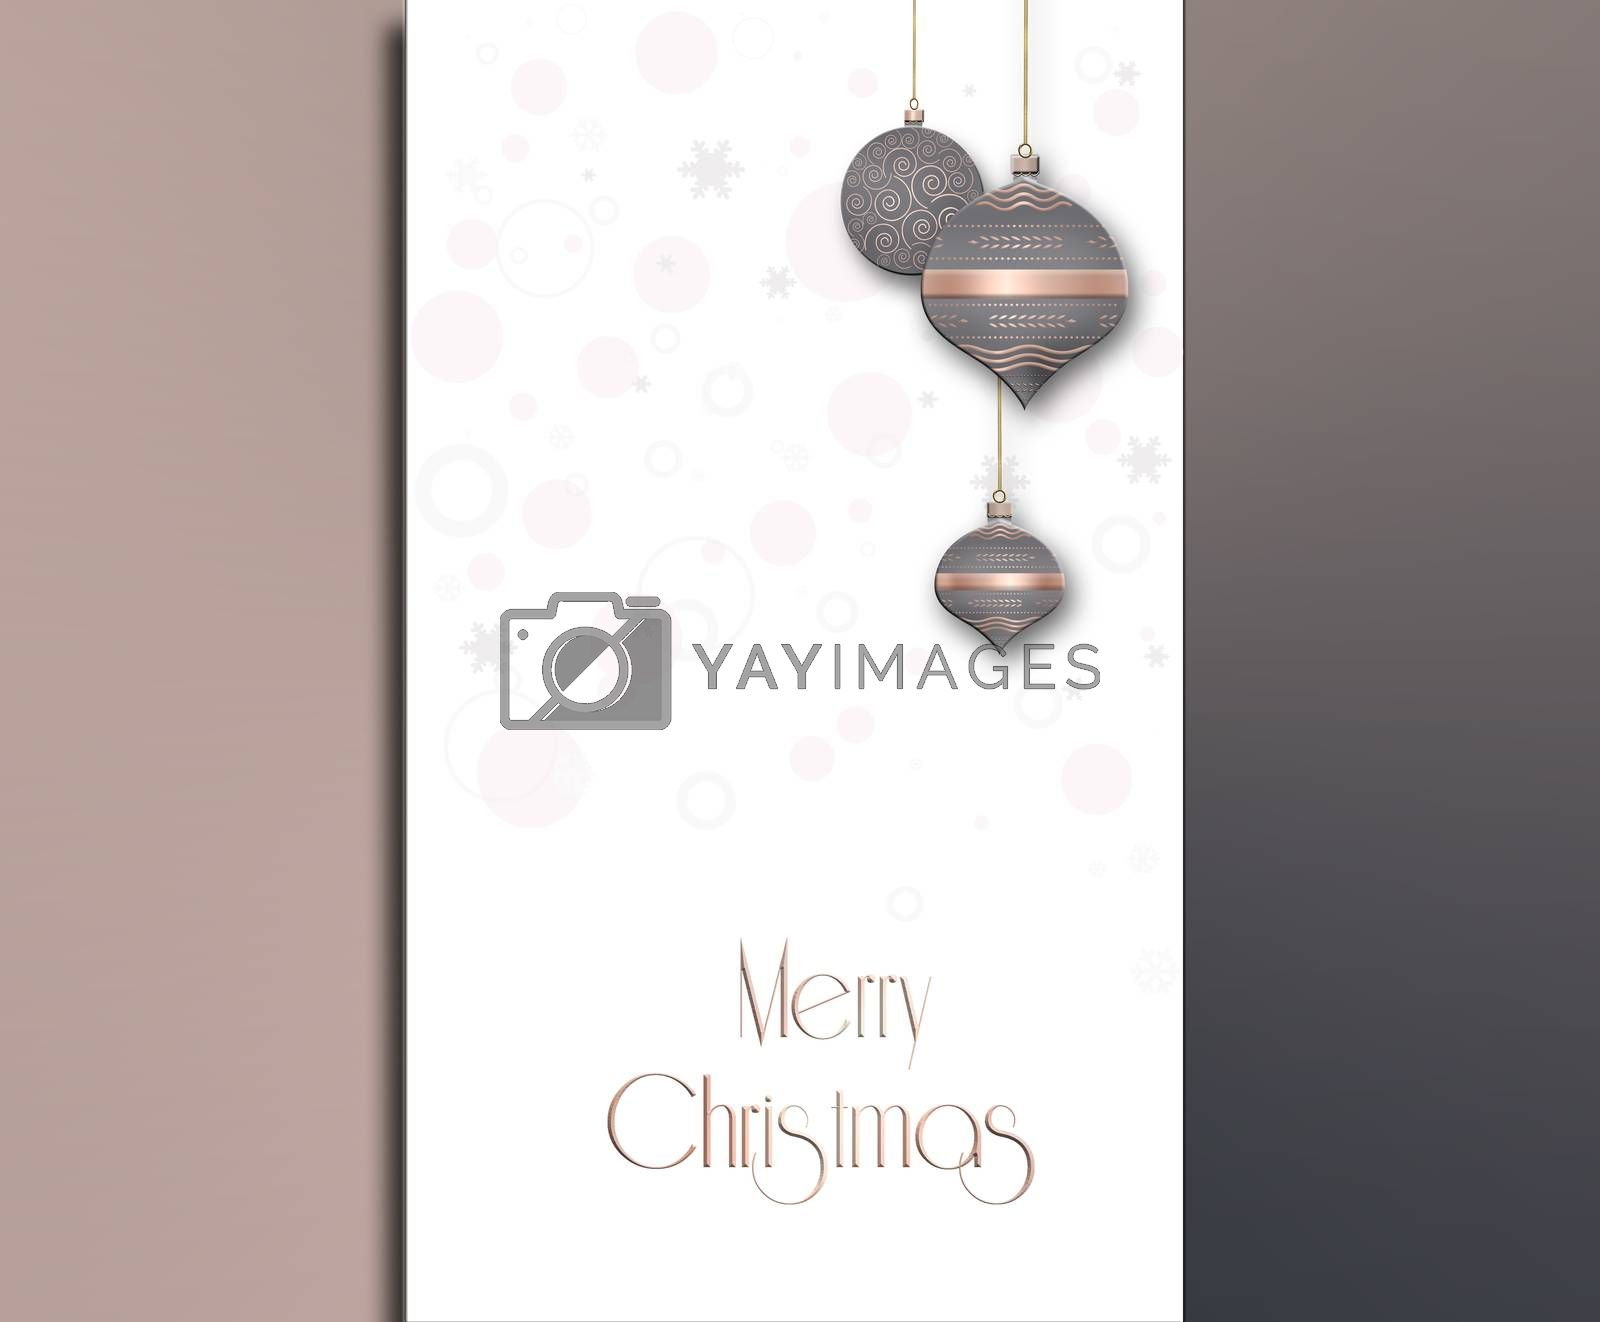 Elegant minimalist Christmas New Year background. Hanging pastel grey pink decorative bauble with gold decor on metallic background. Text Merry Christmas. 3D illustration